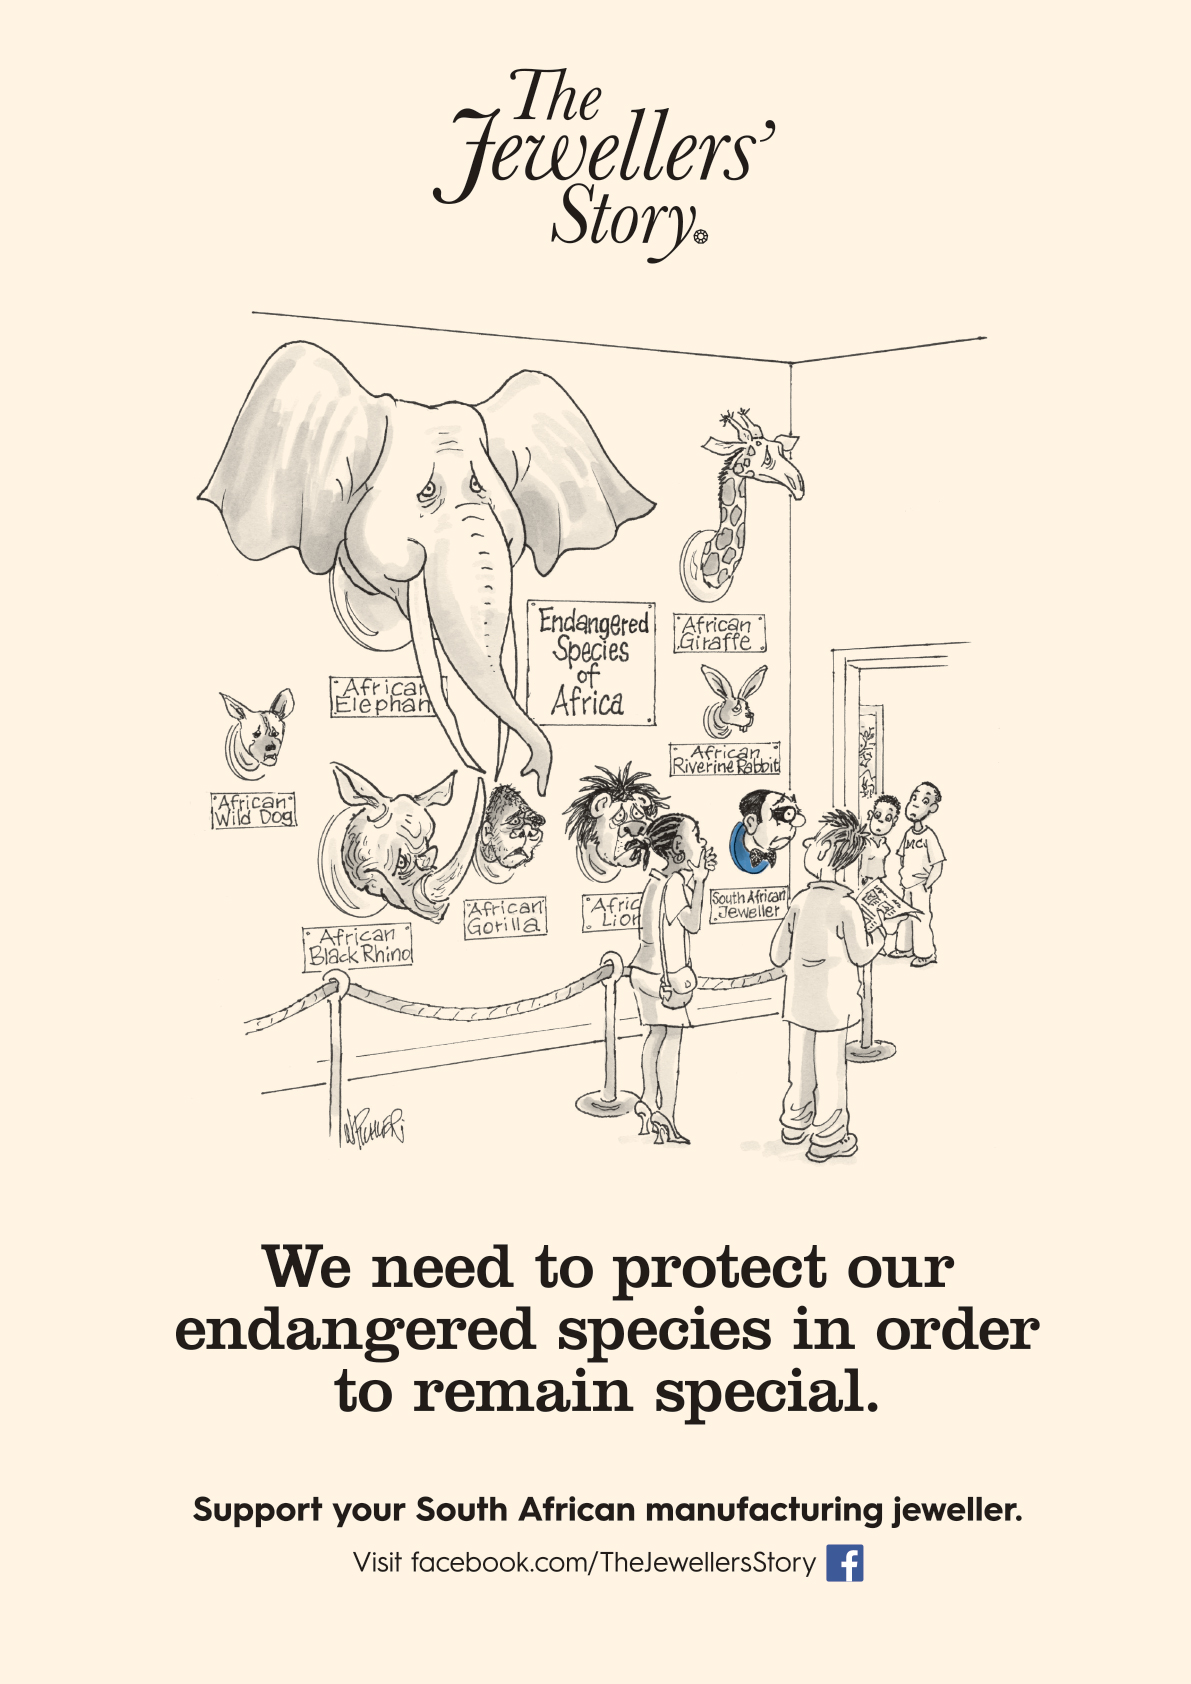 Protect our endangered species